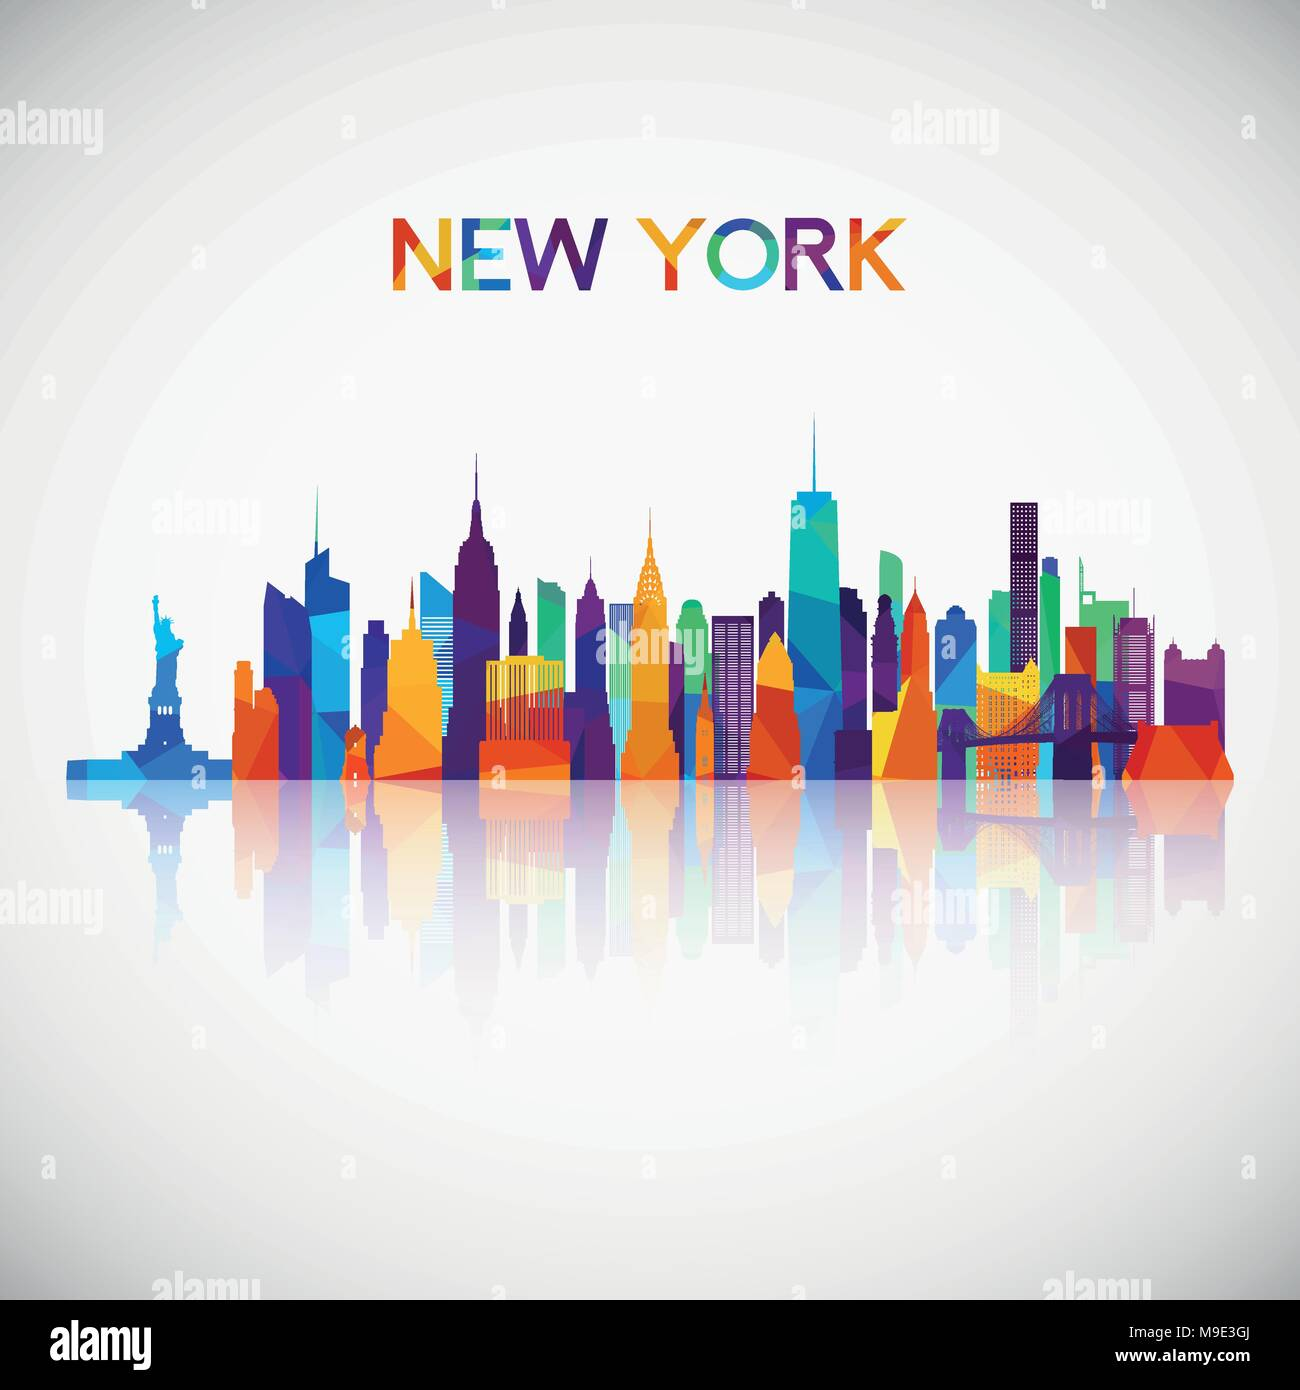 New York skyline silhouette in colorful geometric style. Symbol for your design. Vector illustration. - Stock Vector